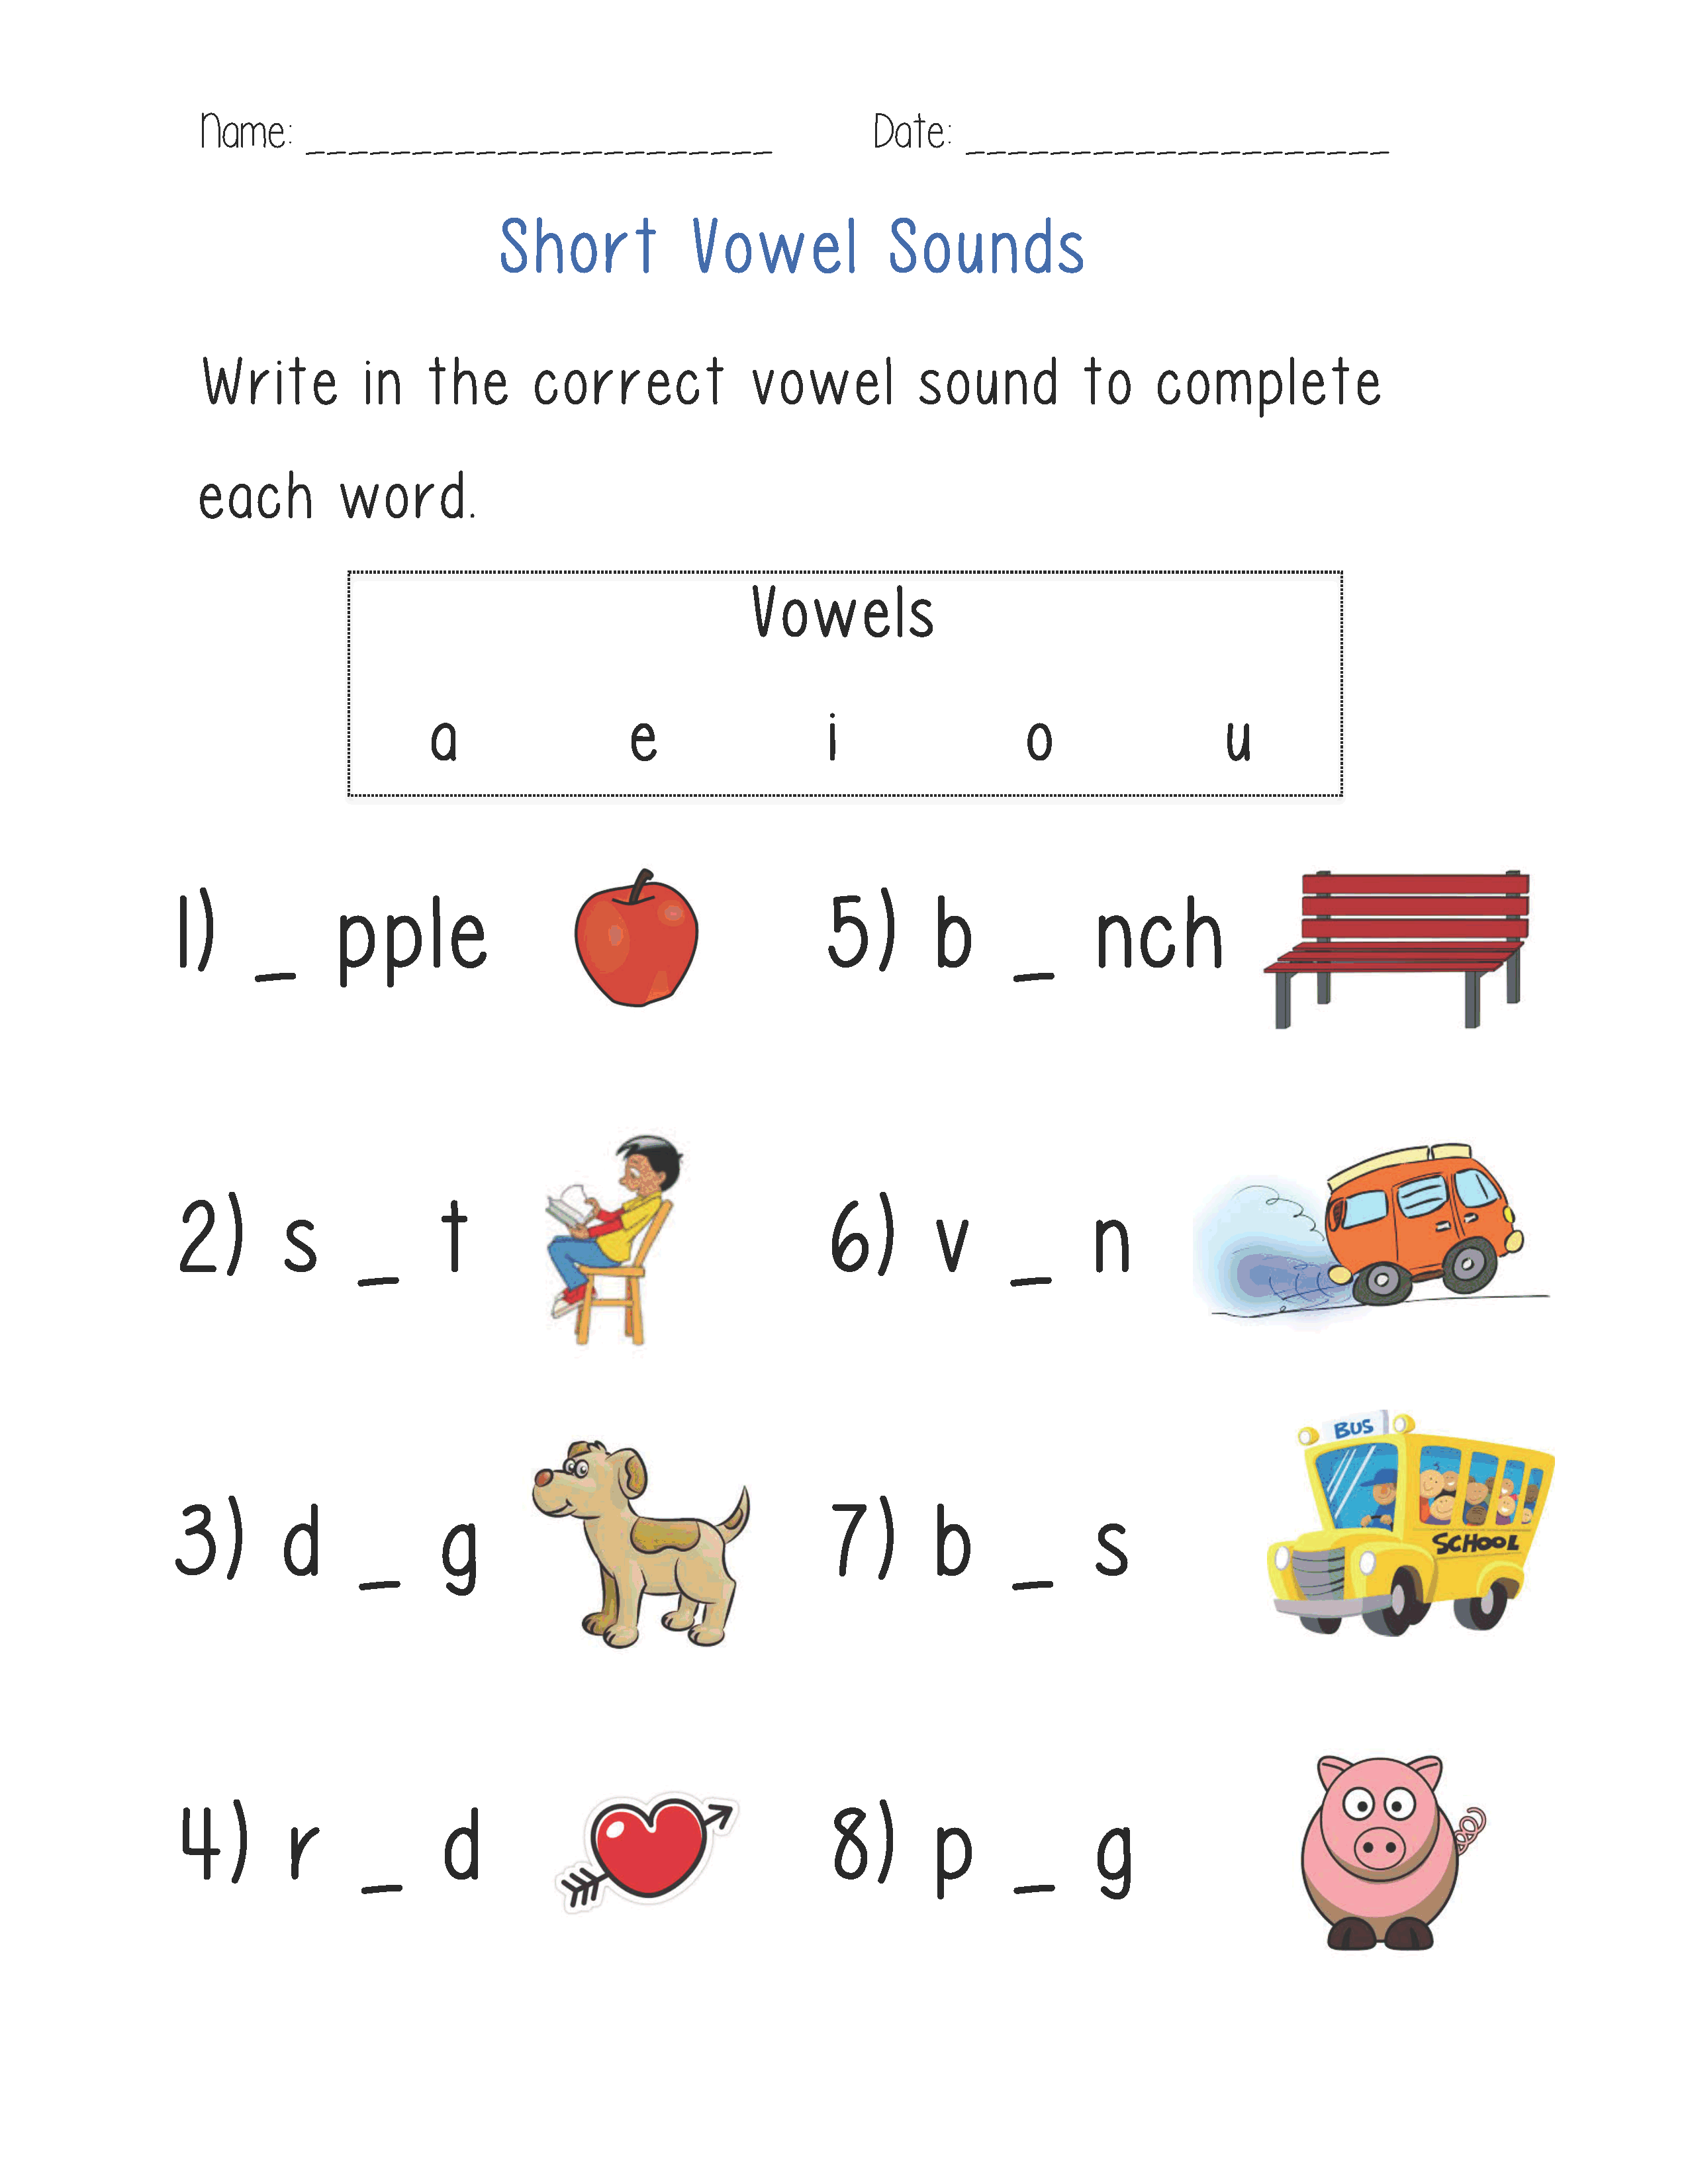 worksheet Short Vowel Sounds Worksheets vowels worksheets short vowel sounds worksheet worksheet